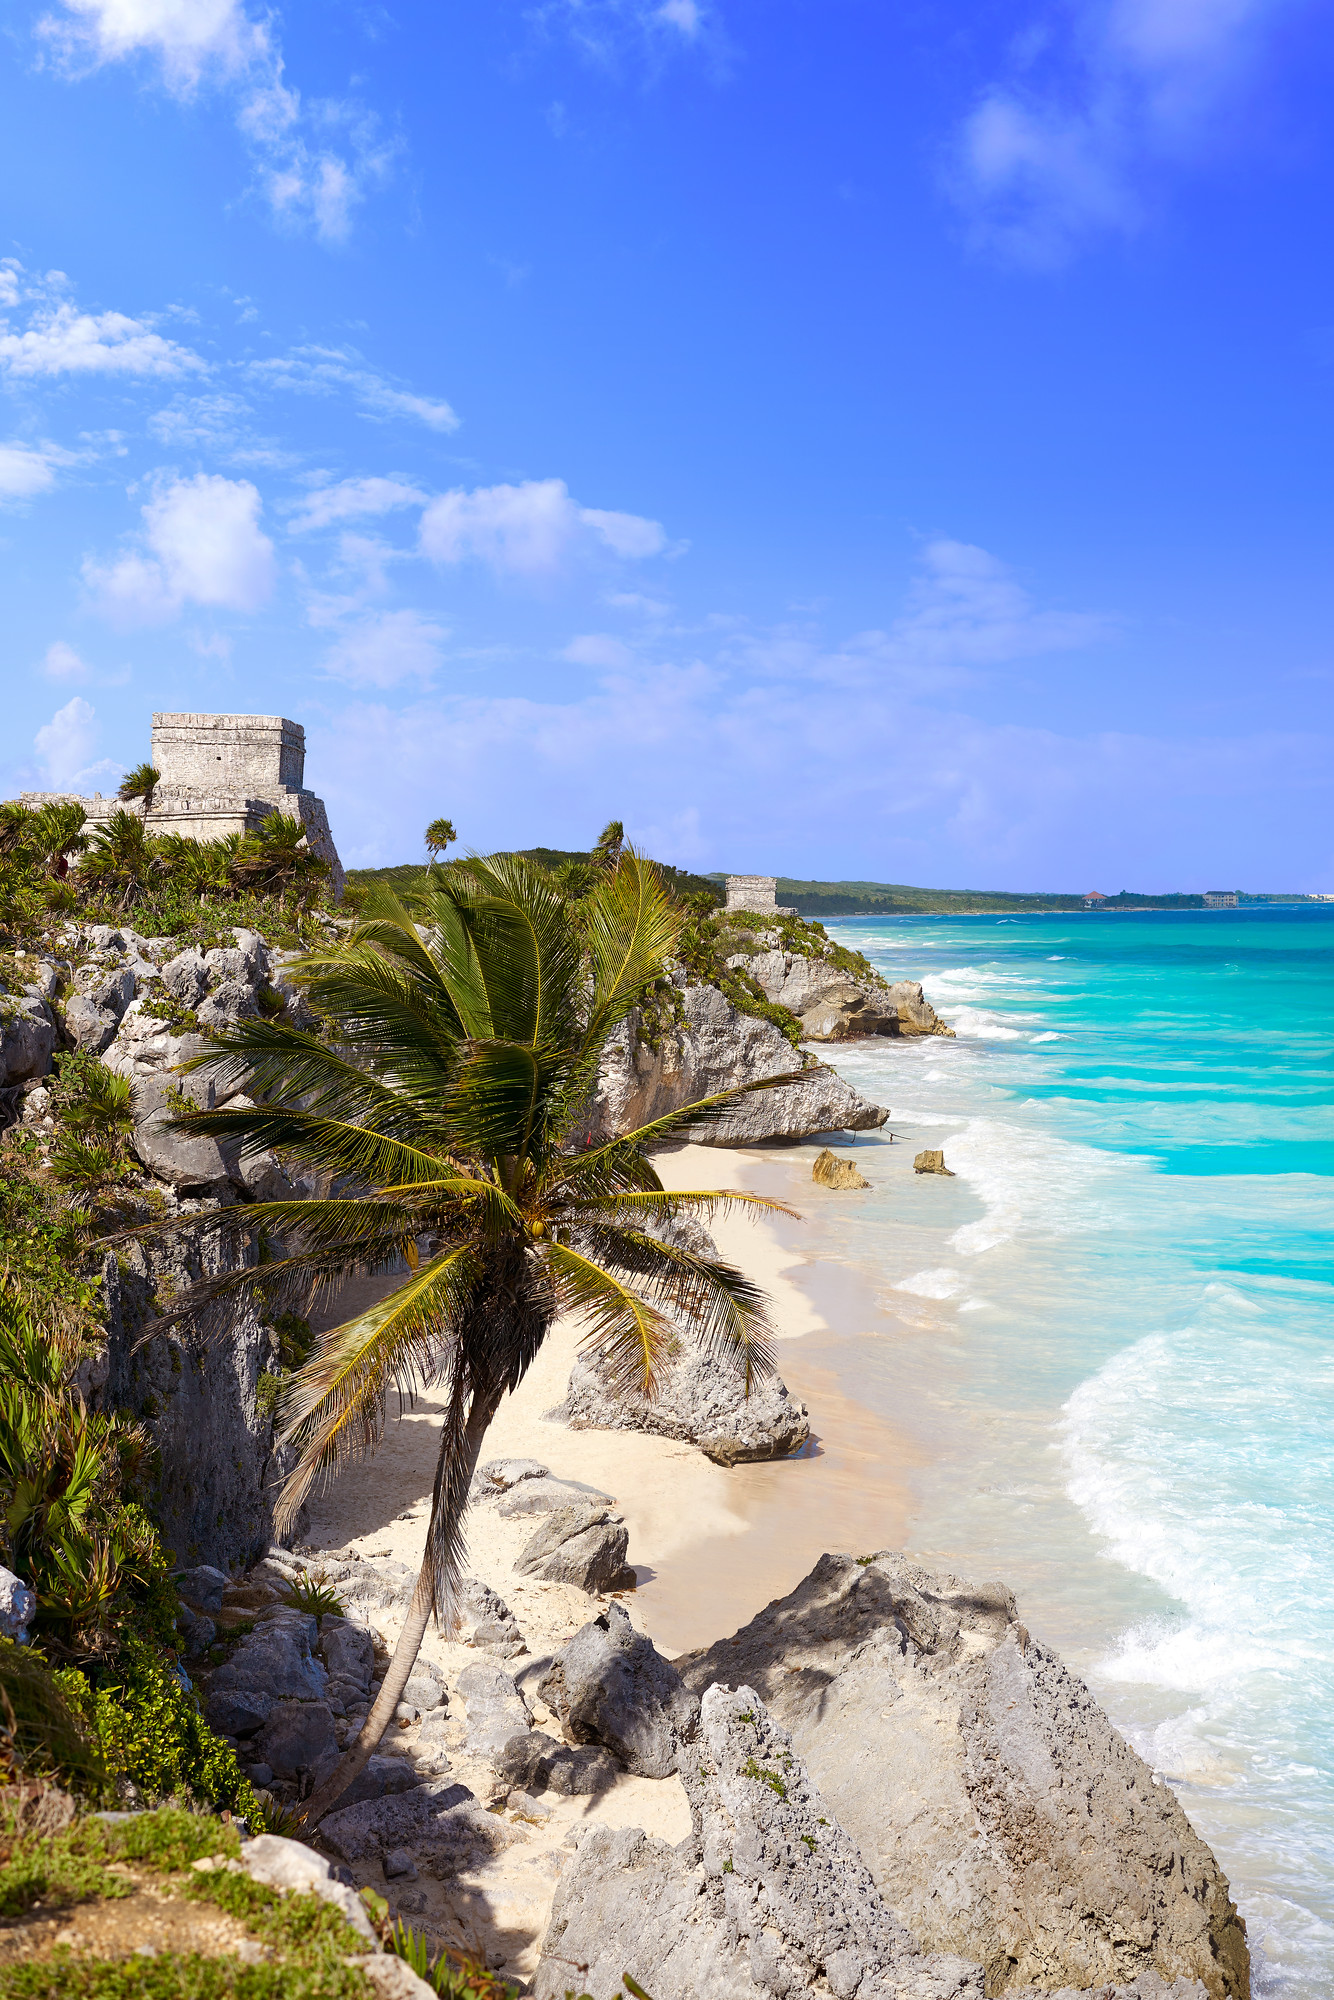 Tulum is just an hour from Felipe Carrillo Puerto, the city is for travelers who want an authentic experience in the Riviera Maya.